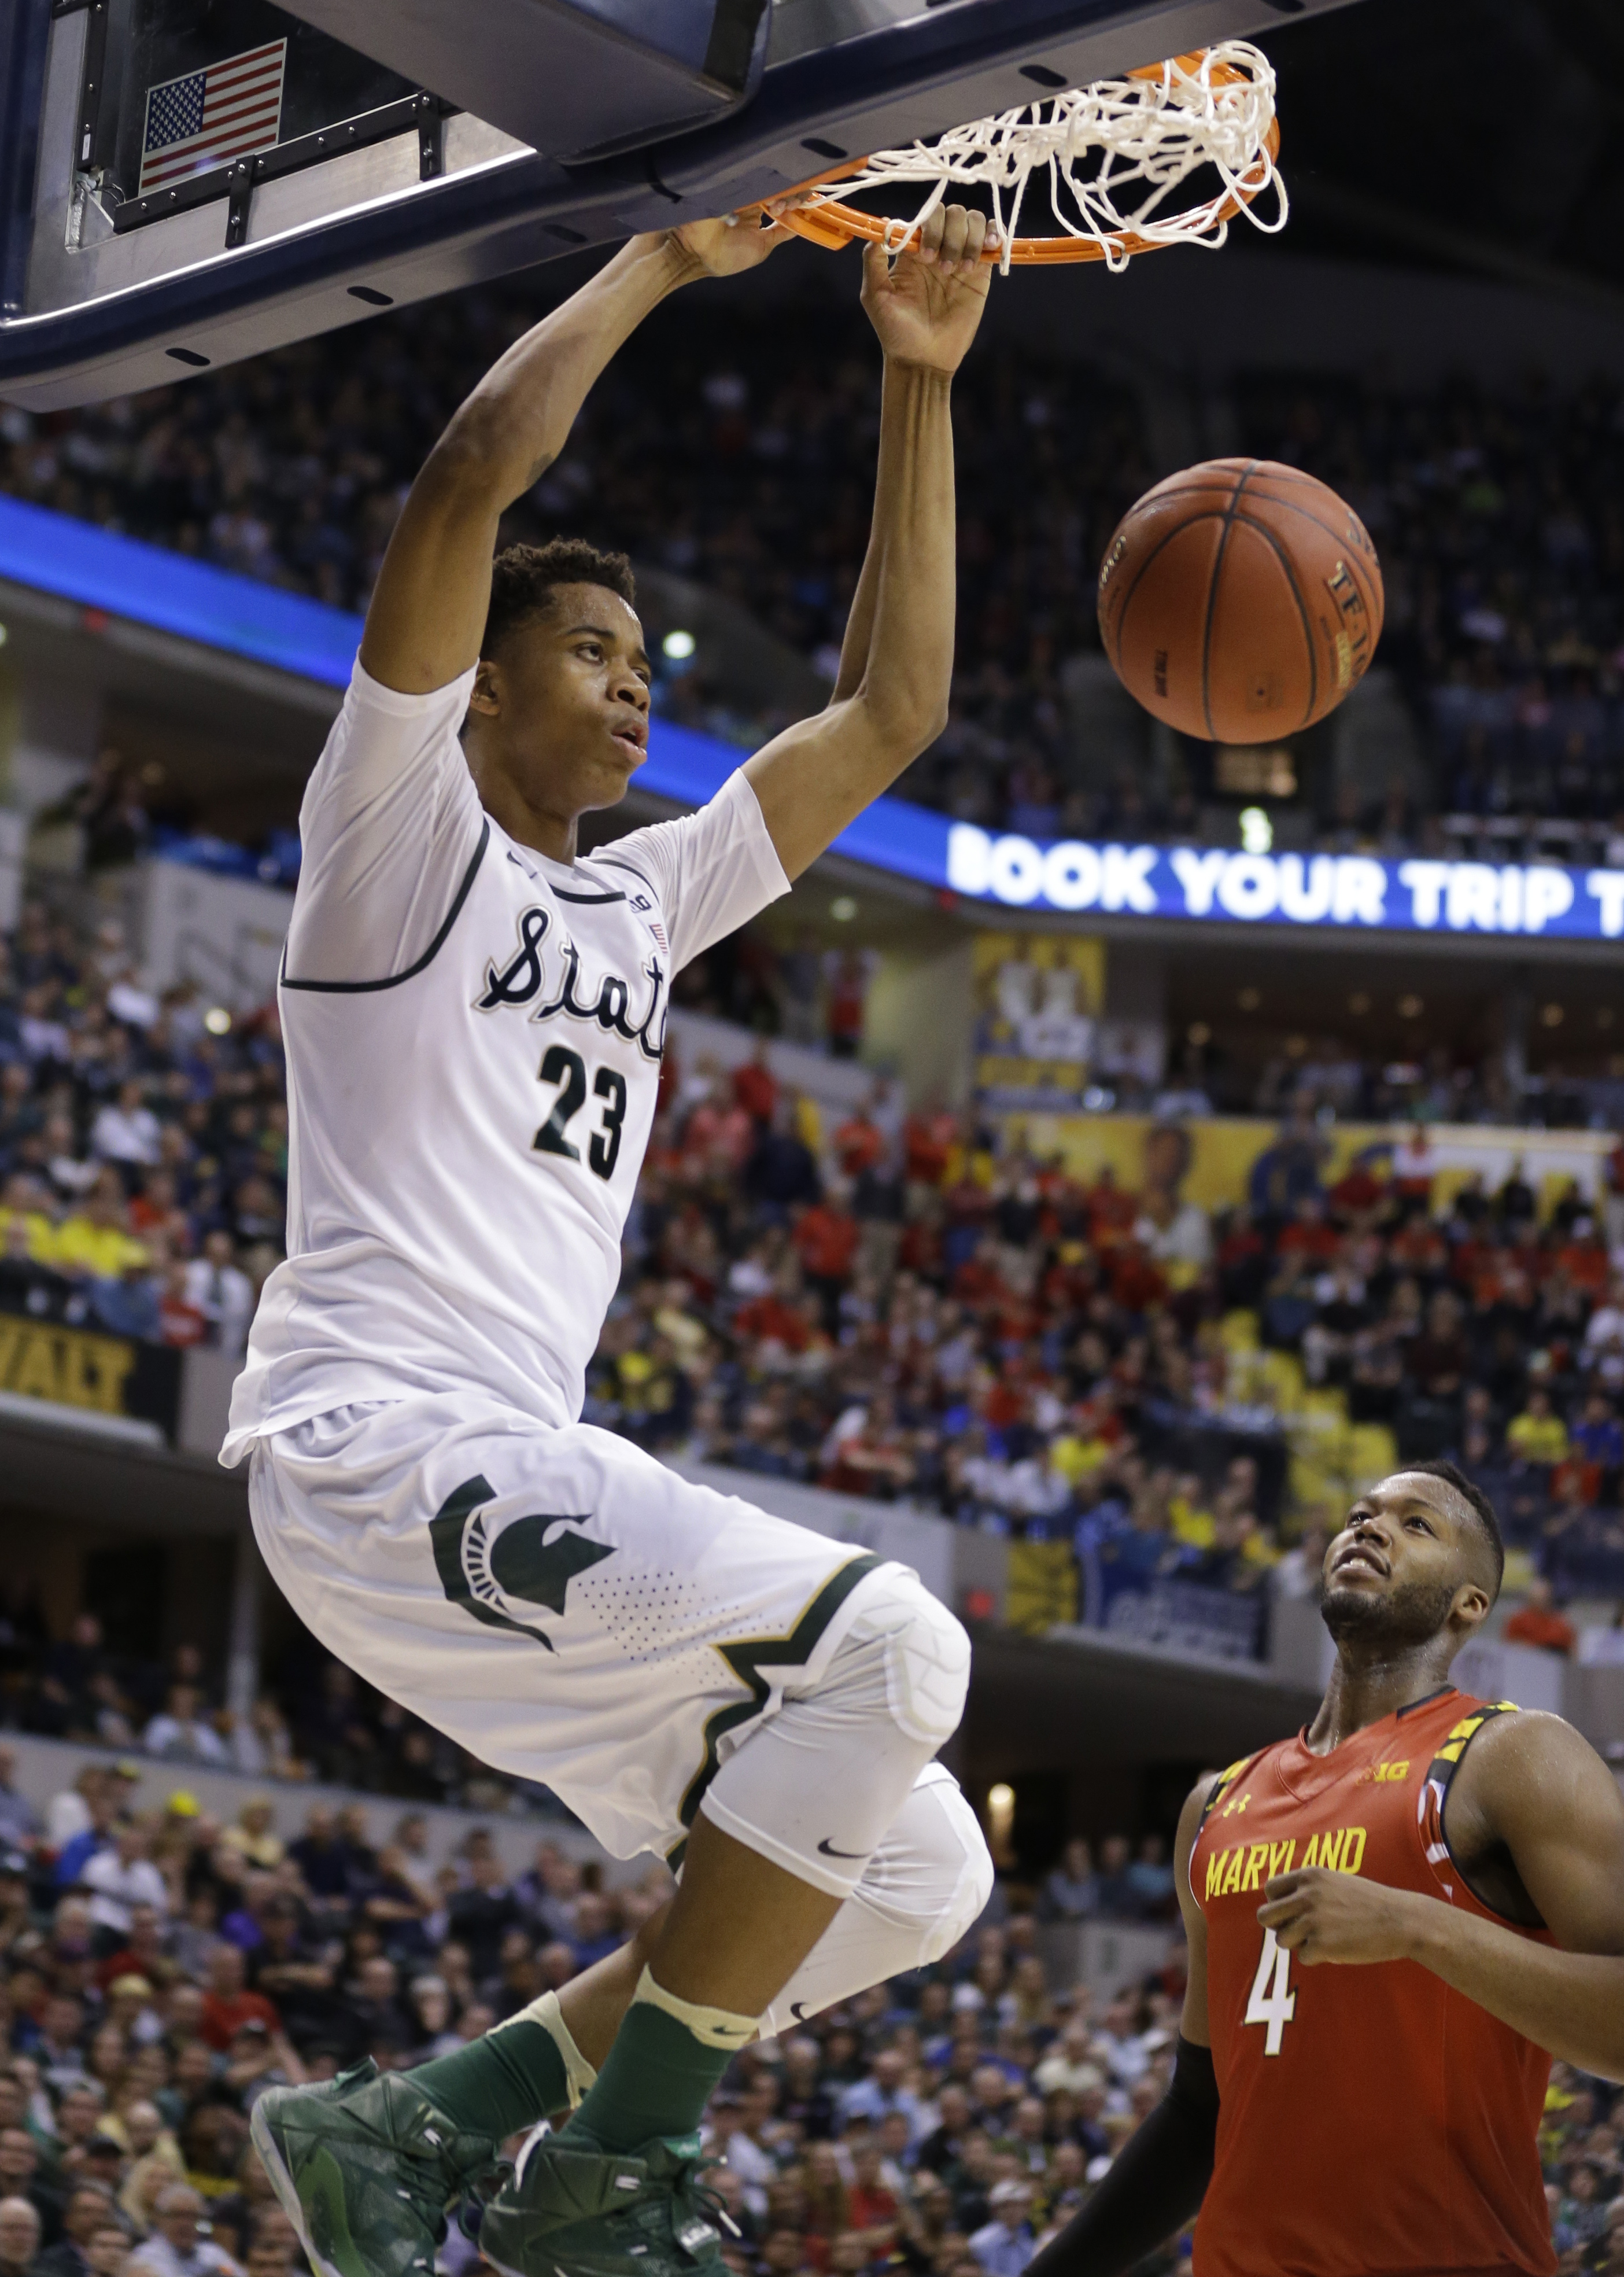 Michigan State's Deyonta Davis (23) dunks as Maryland's Robert Carter (4) watches in the second half of an NCAA college basketball game against Maryland during the semifinals of the Big Ten Conference tournament in Indianapolis, Saturday, March 12, 2016.